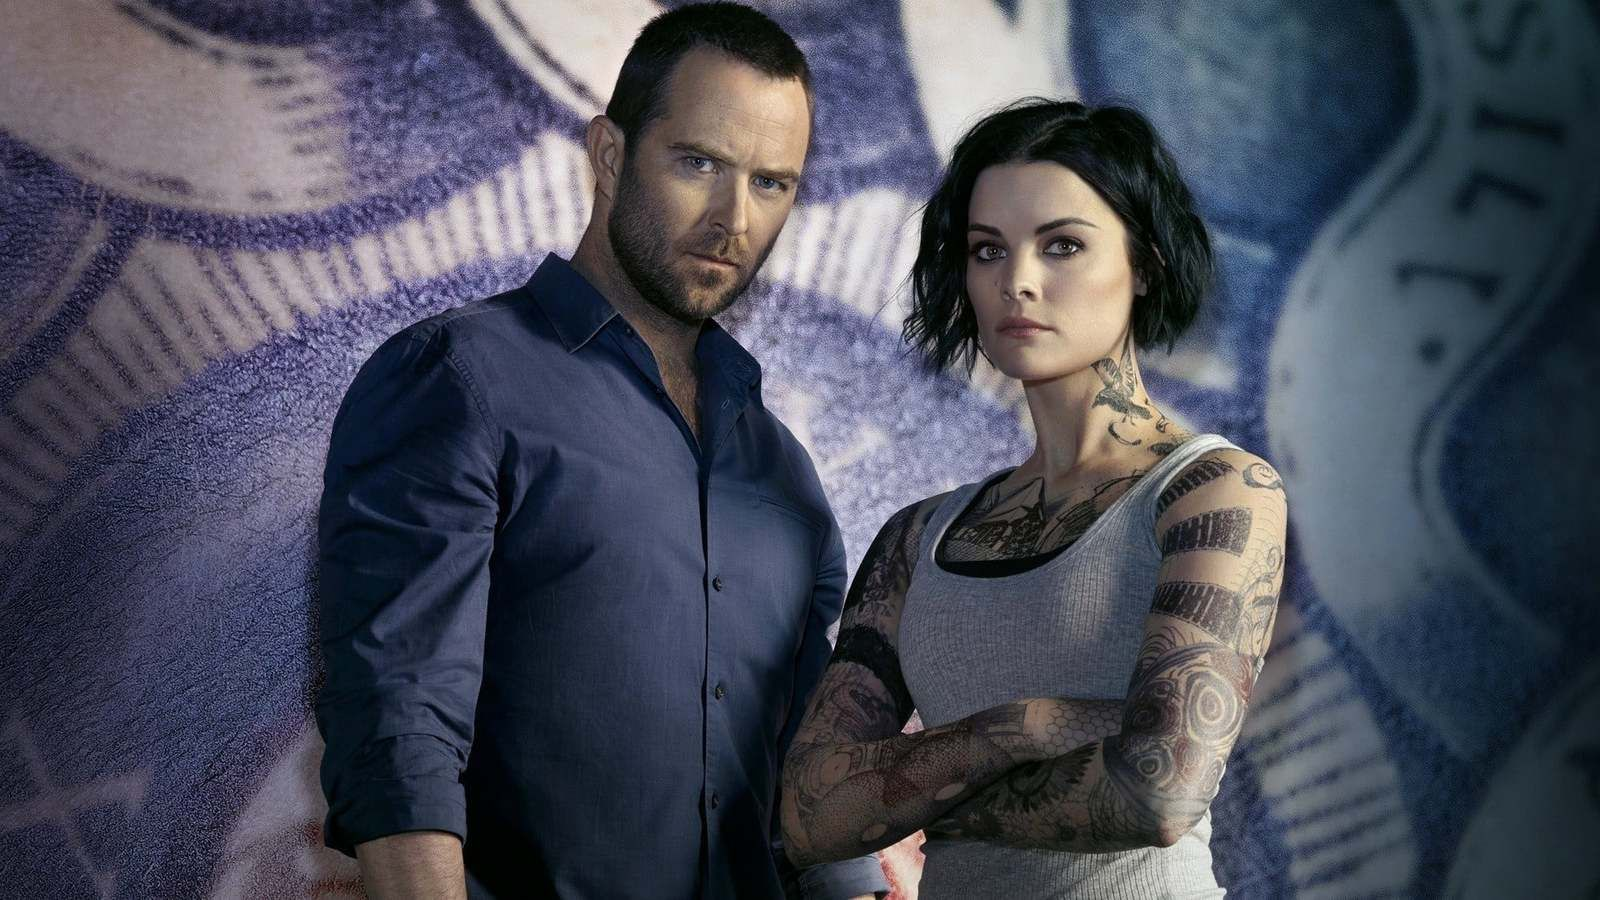 Blindspot Season 5 Episode 9 update